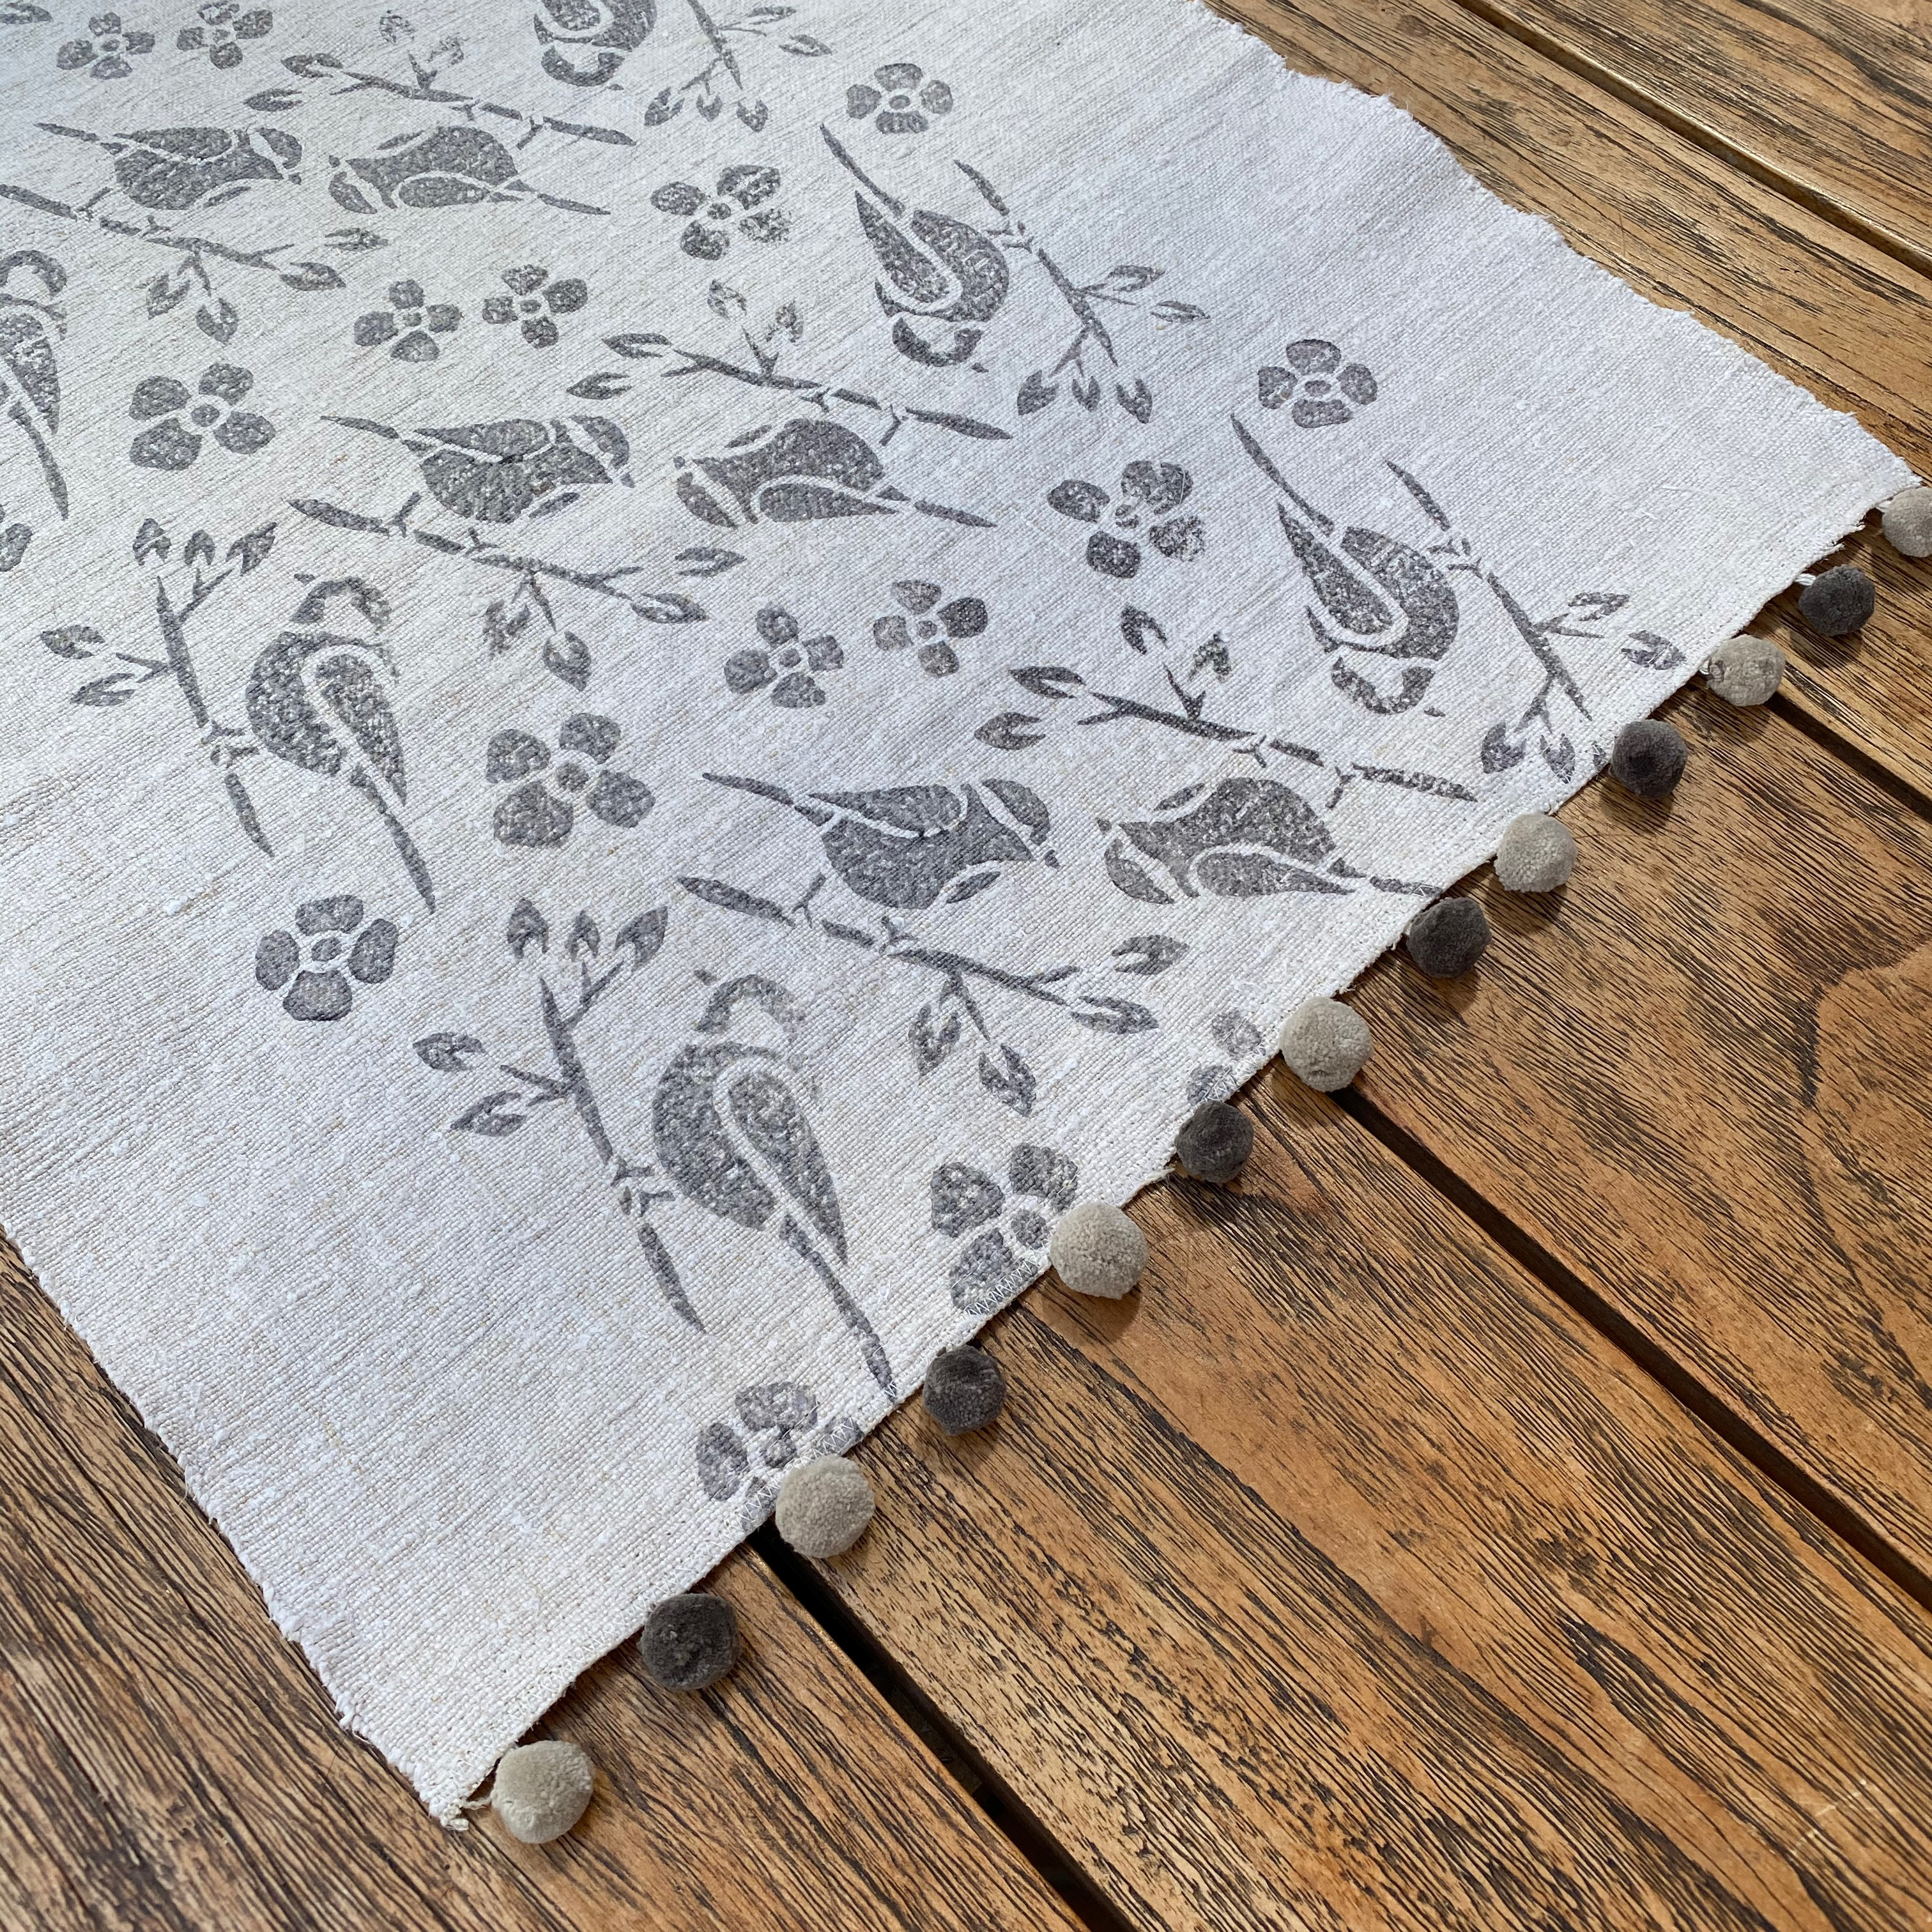 Hand Block Printed Table Runner in Grey